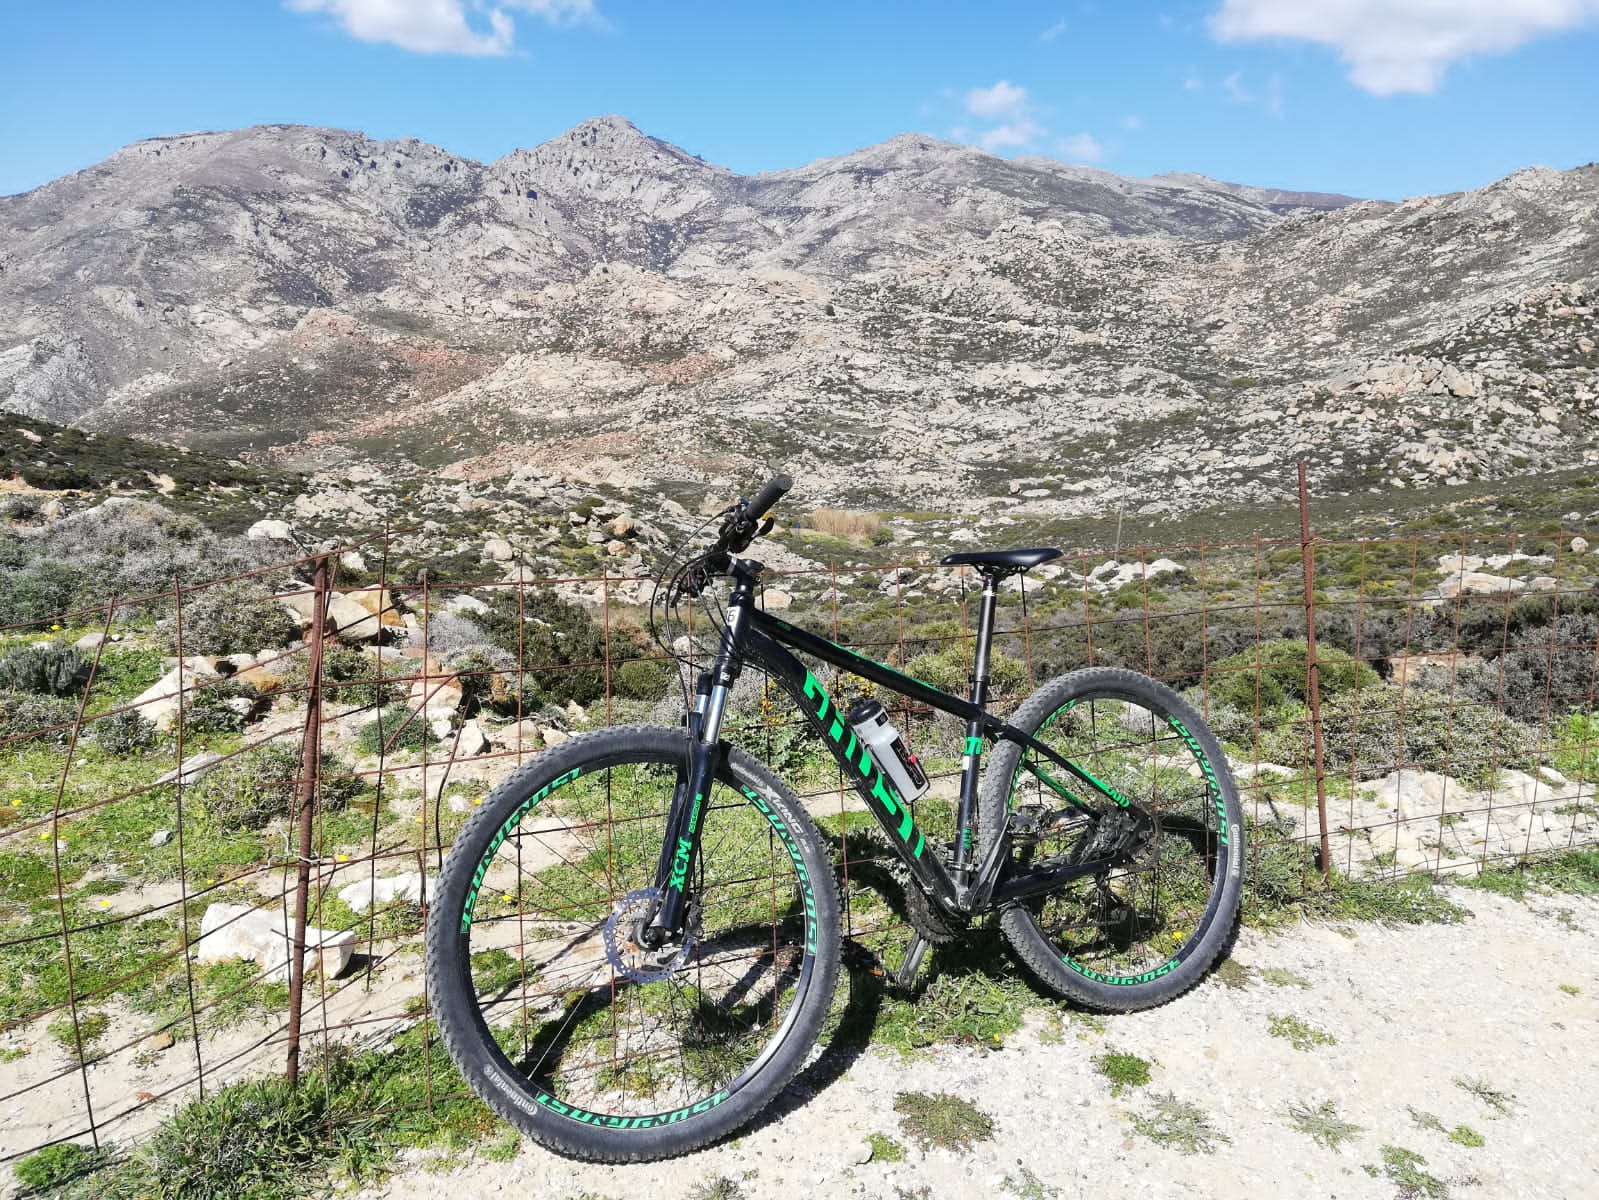 ghost bikes rental mountainbiking naxos greece flisvos sportclub trekking trails off road explore